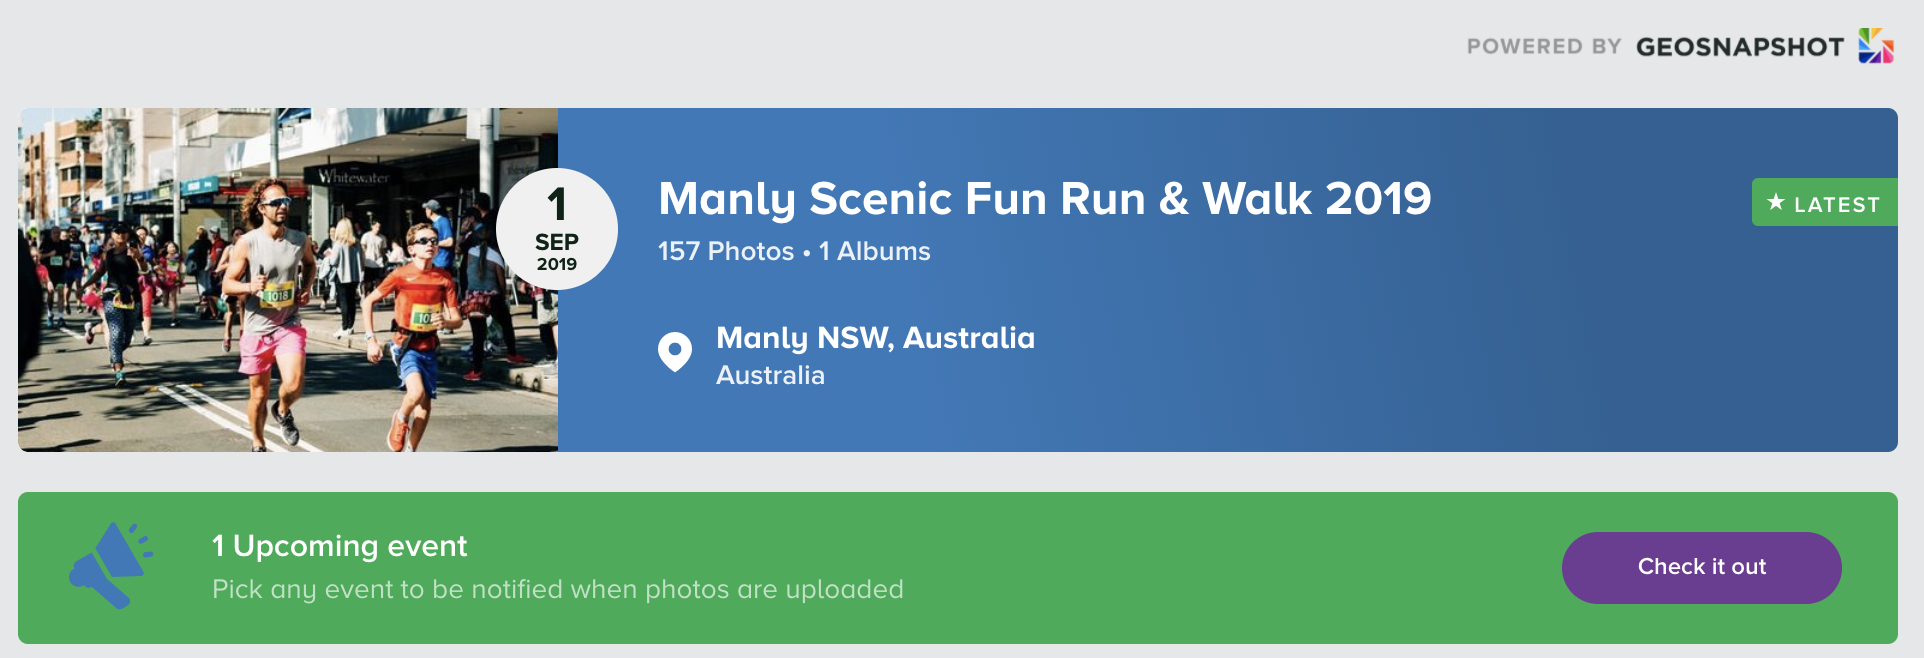 Manly Scenic Fun Run and Walk.png